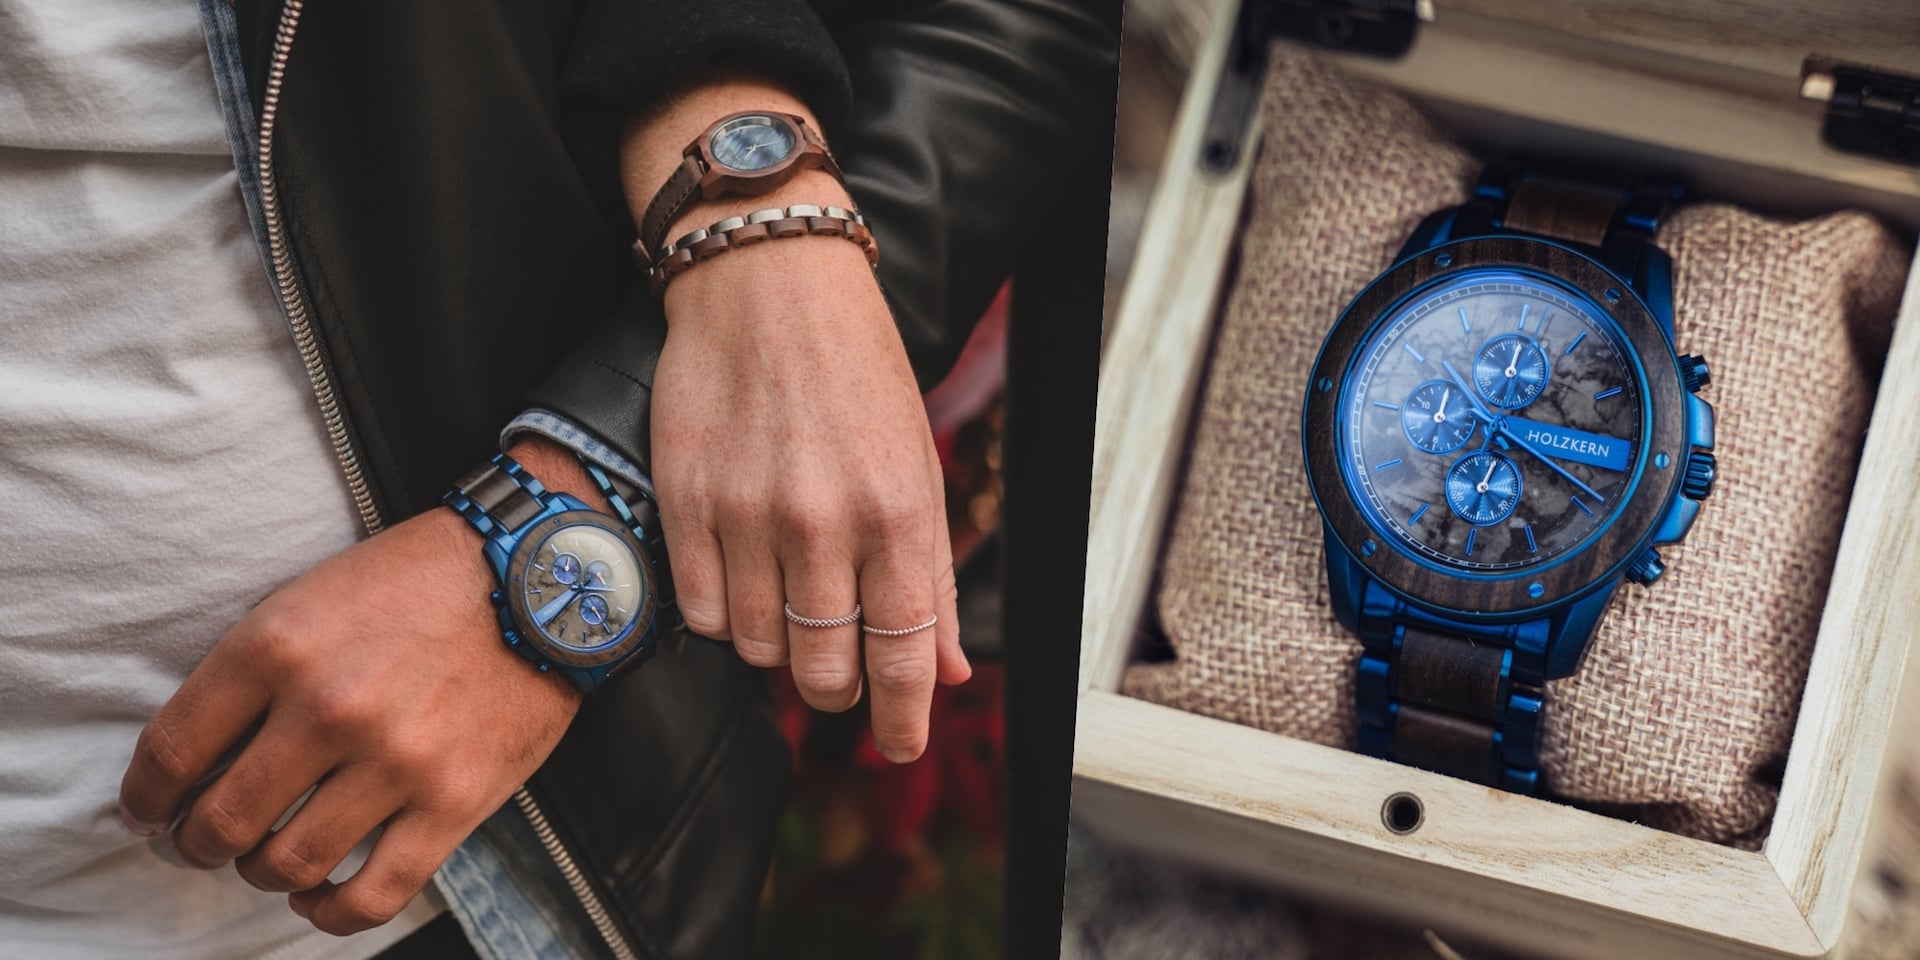 Our chronograph Kay and our women's model Côte dAzur